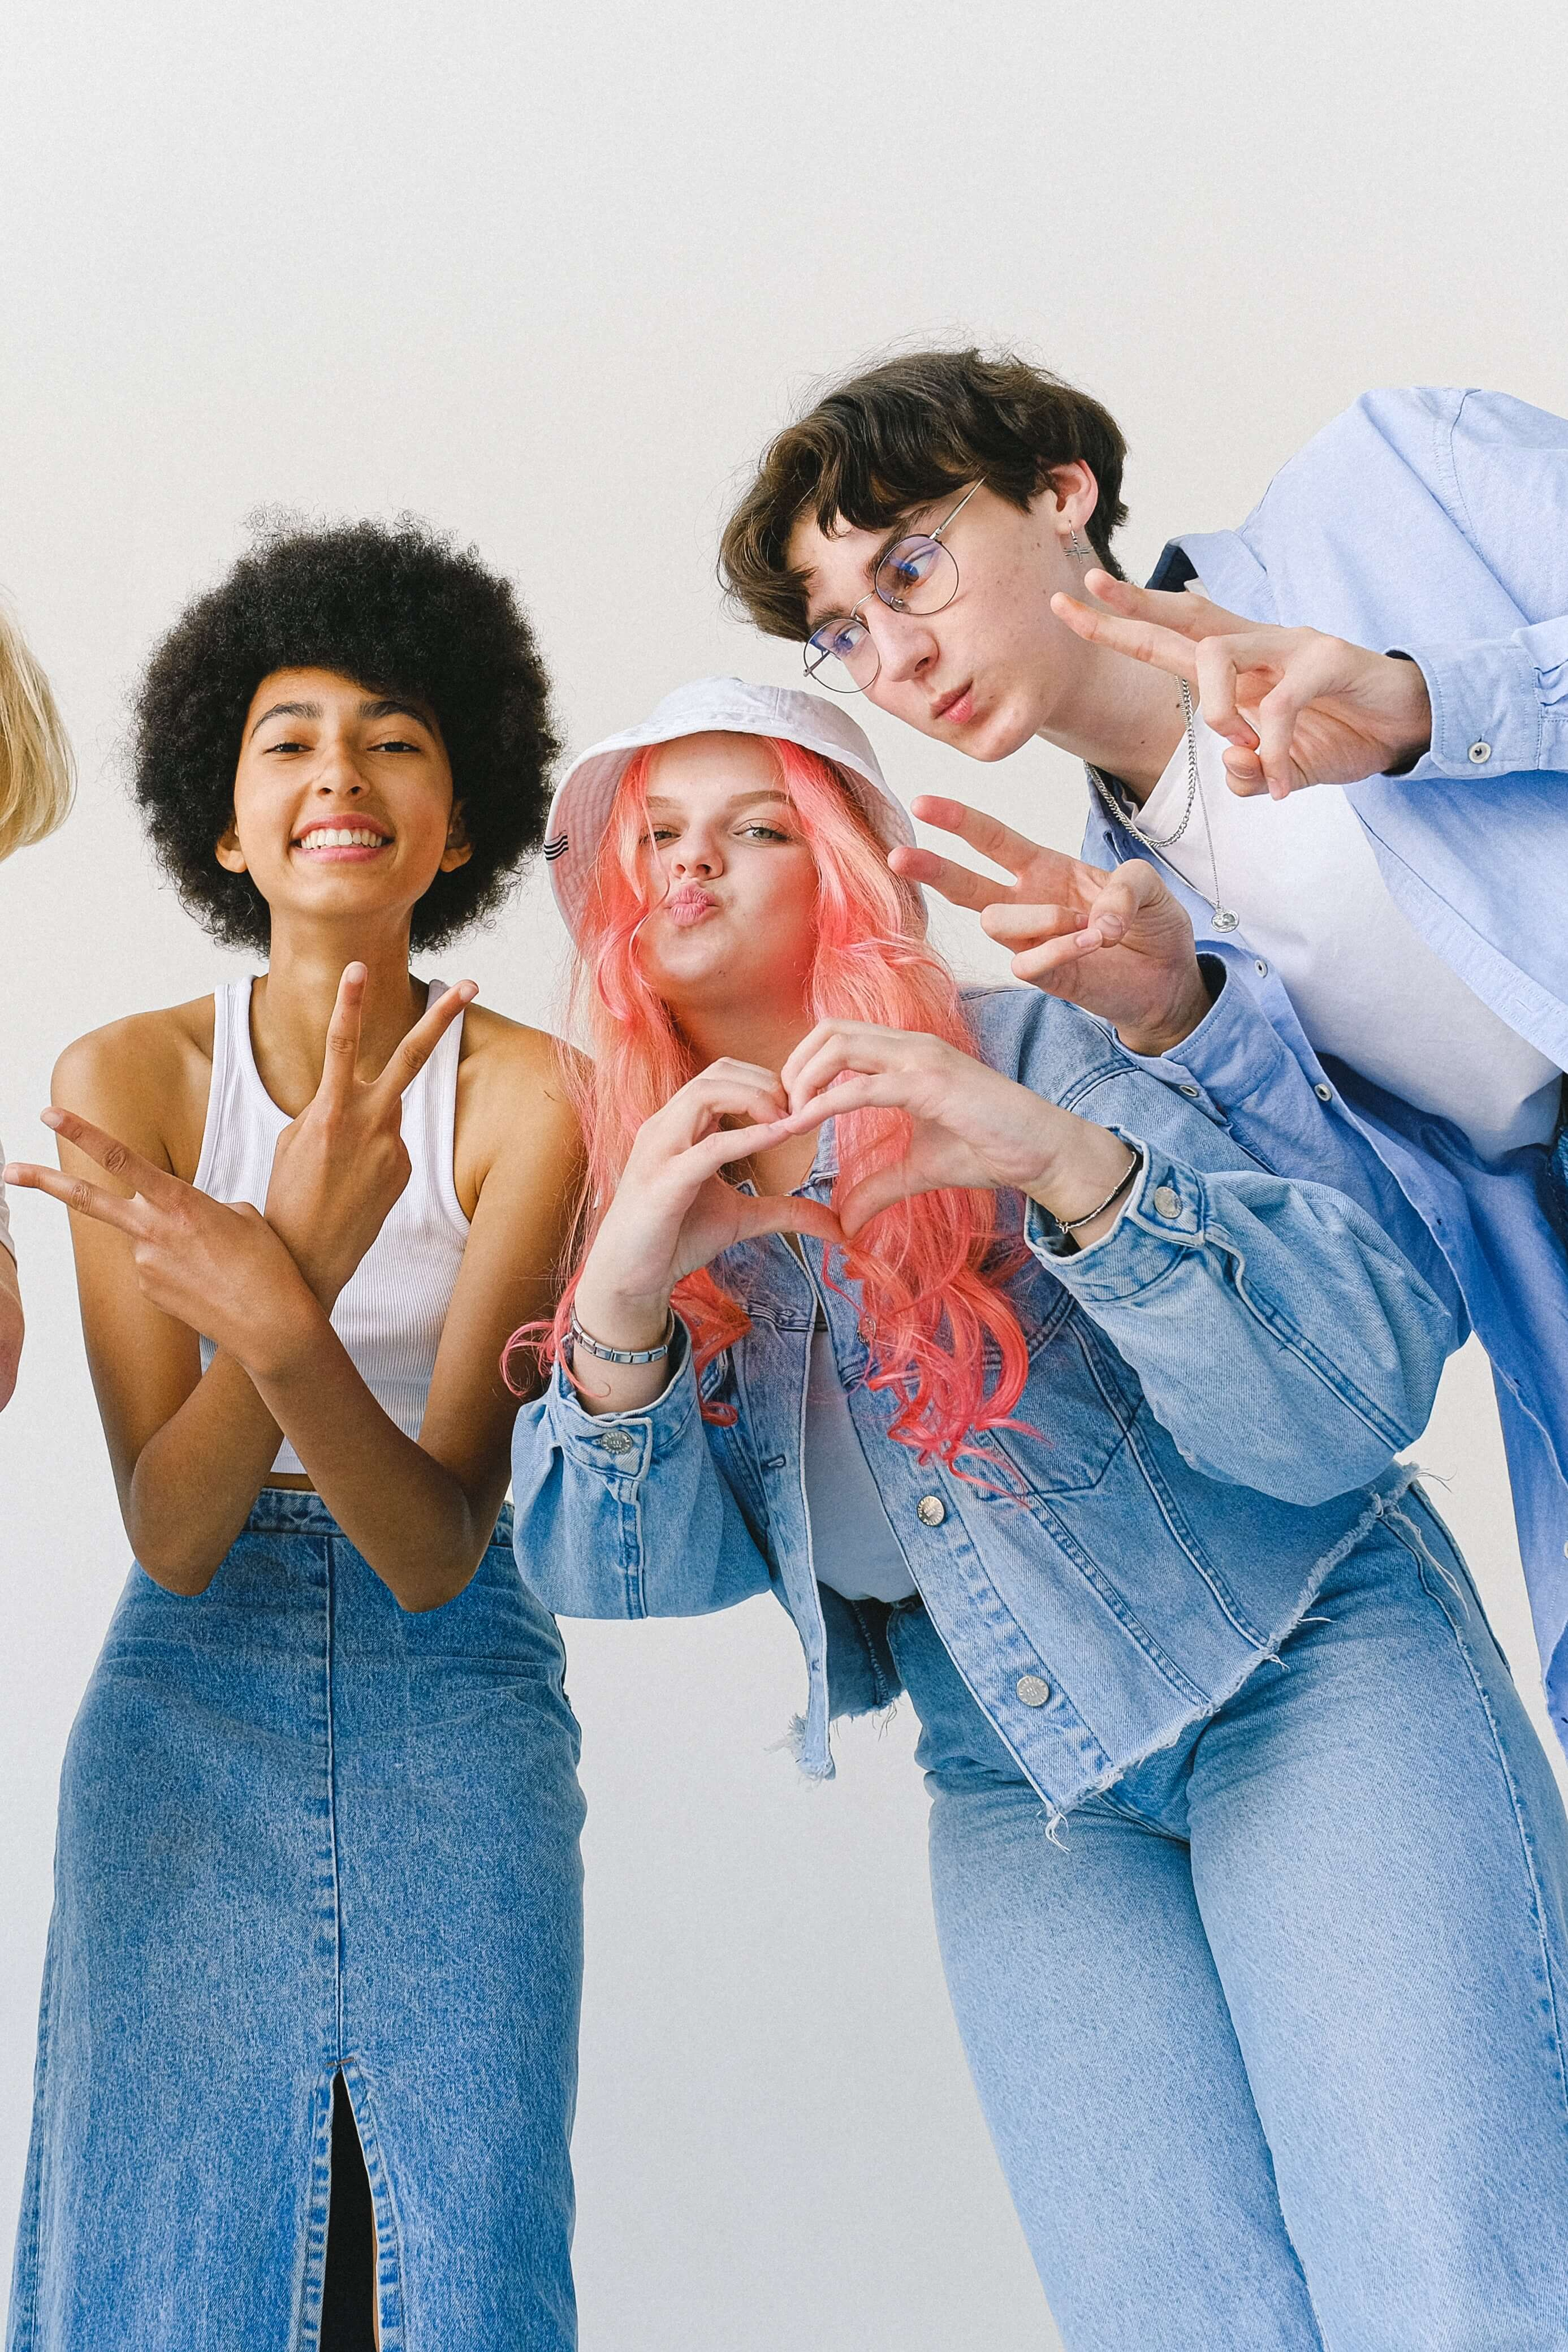 Group of teens together